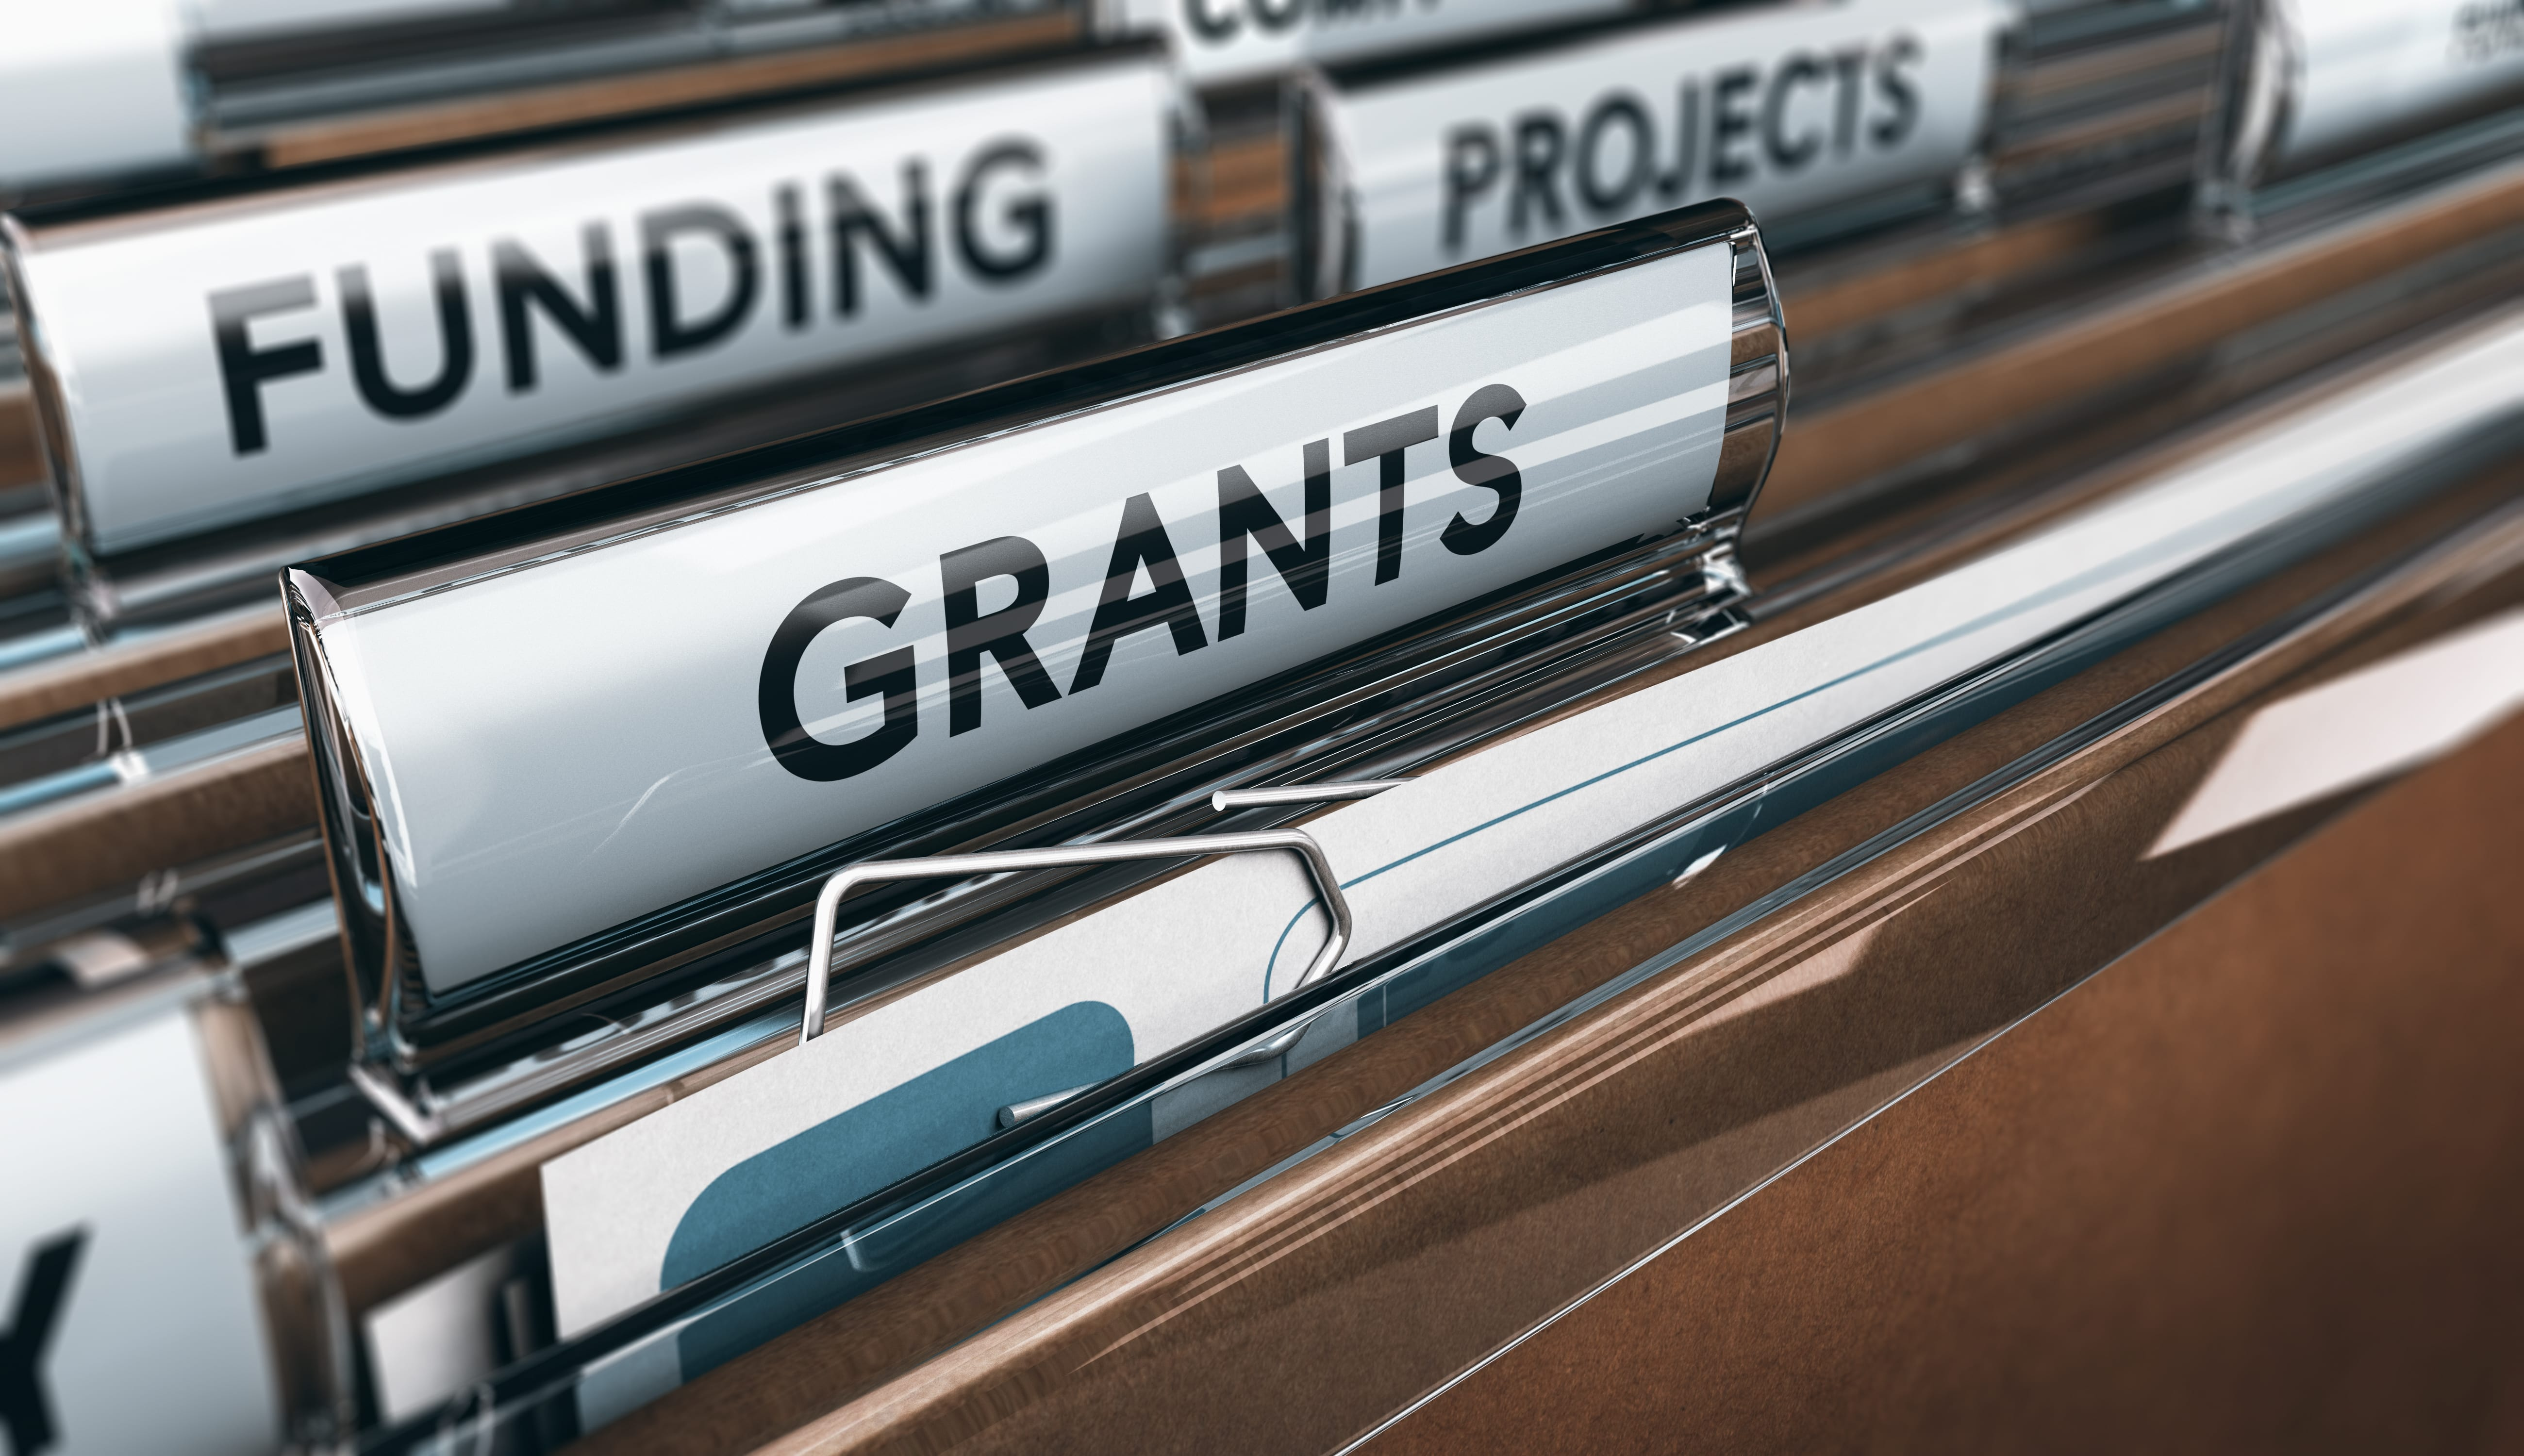 types-of-grants-you-should-know-in-nigeria